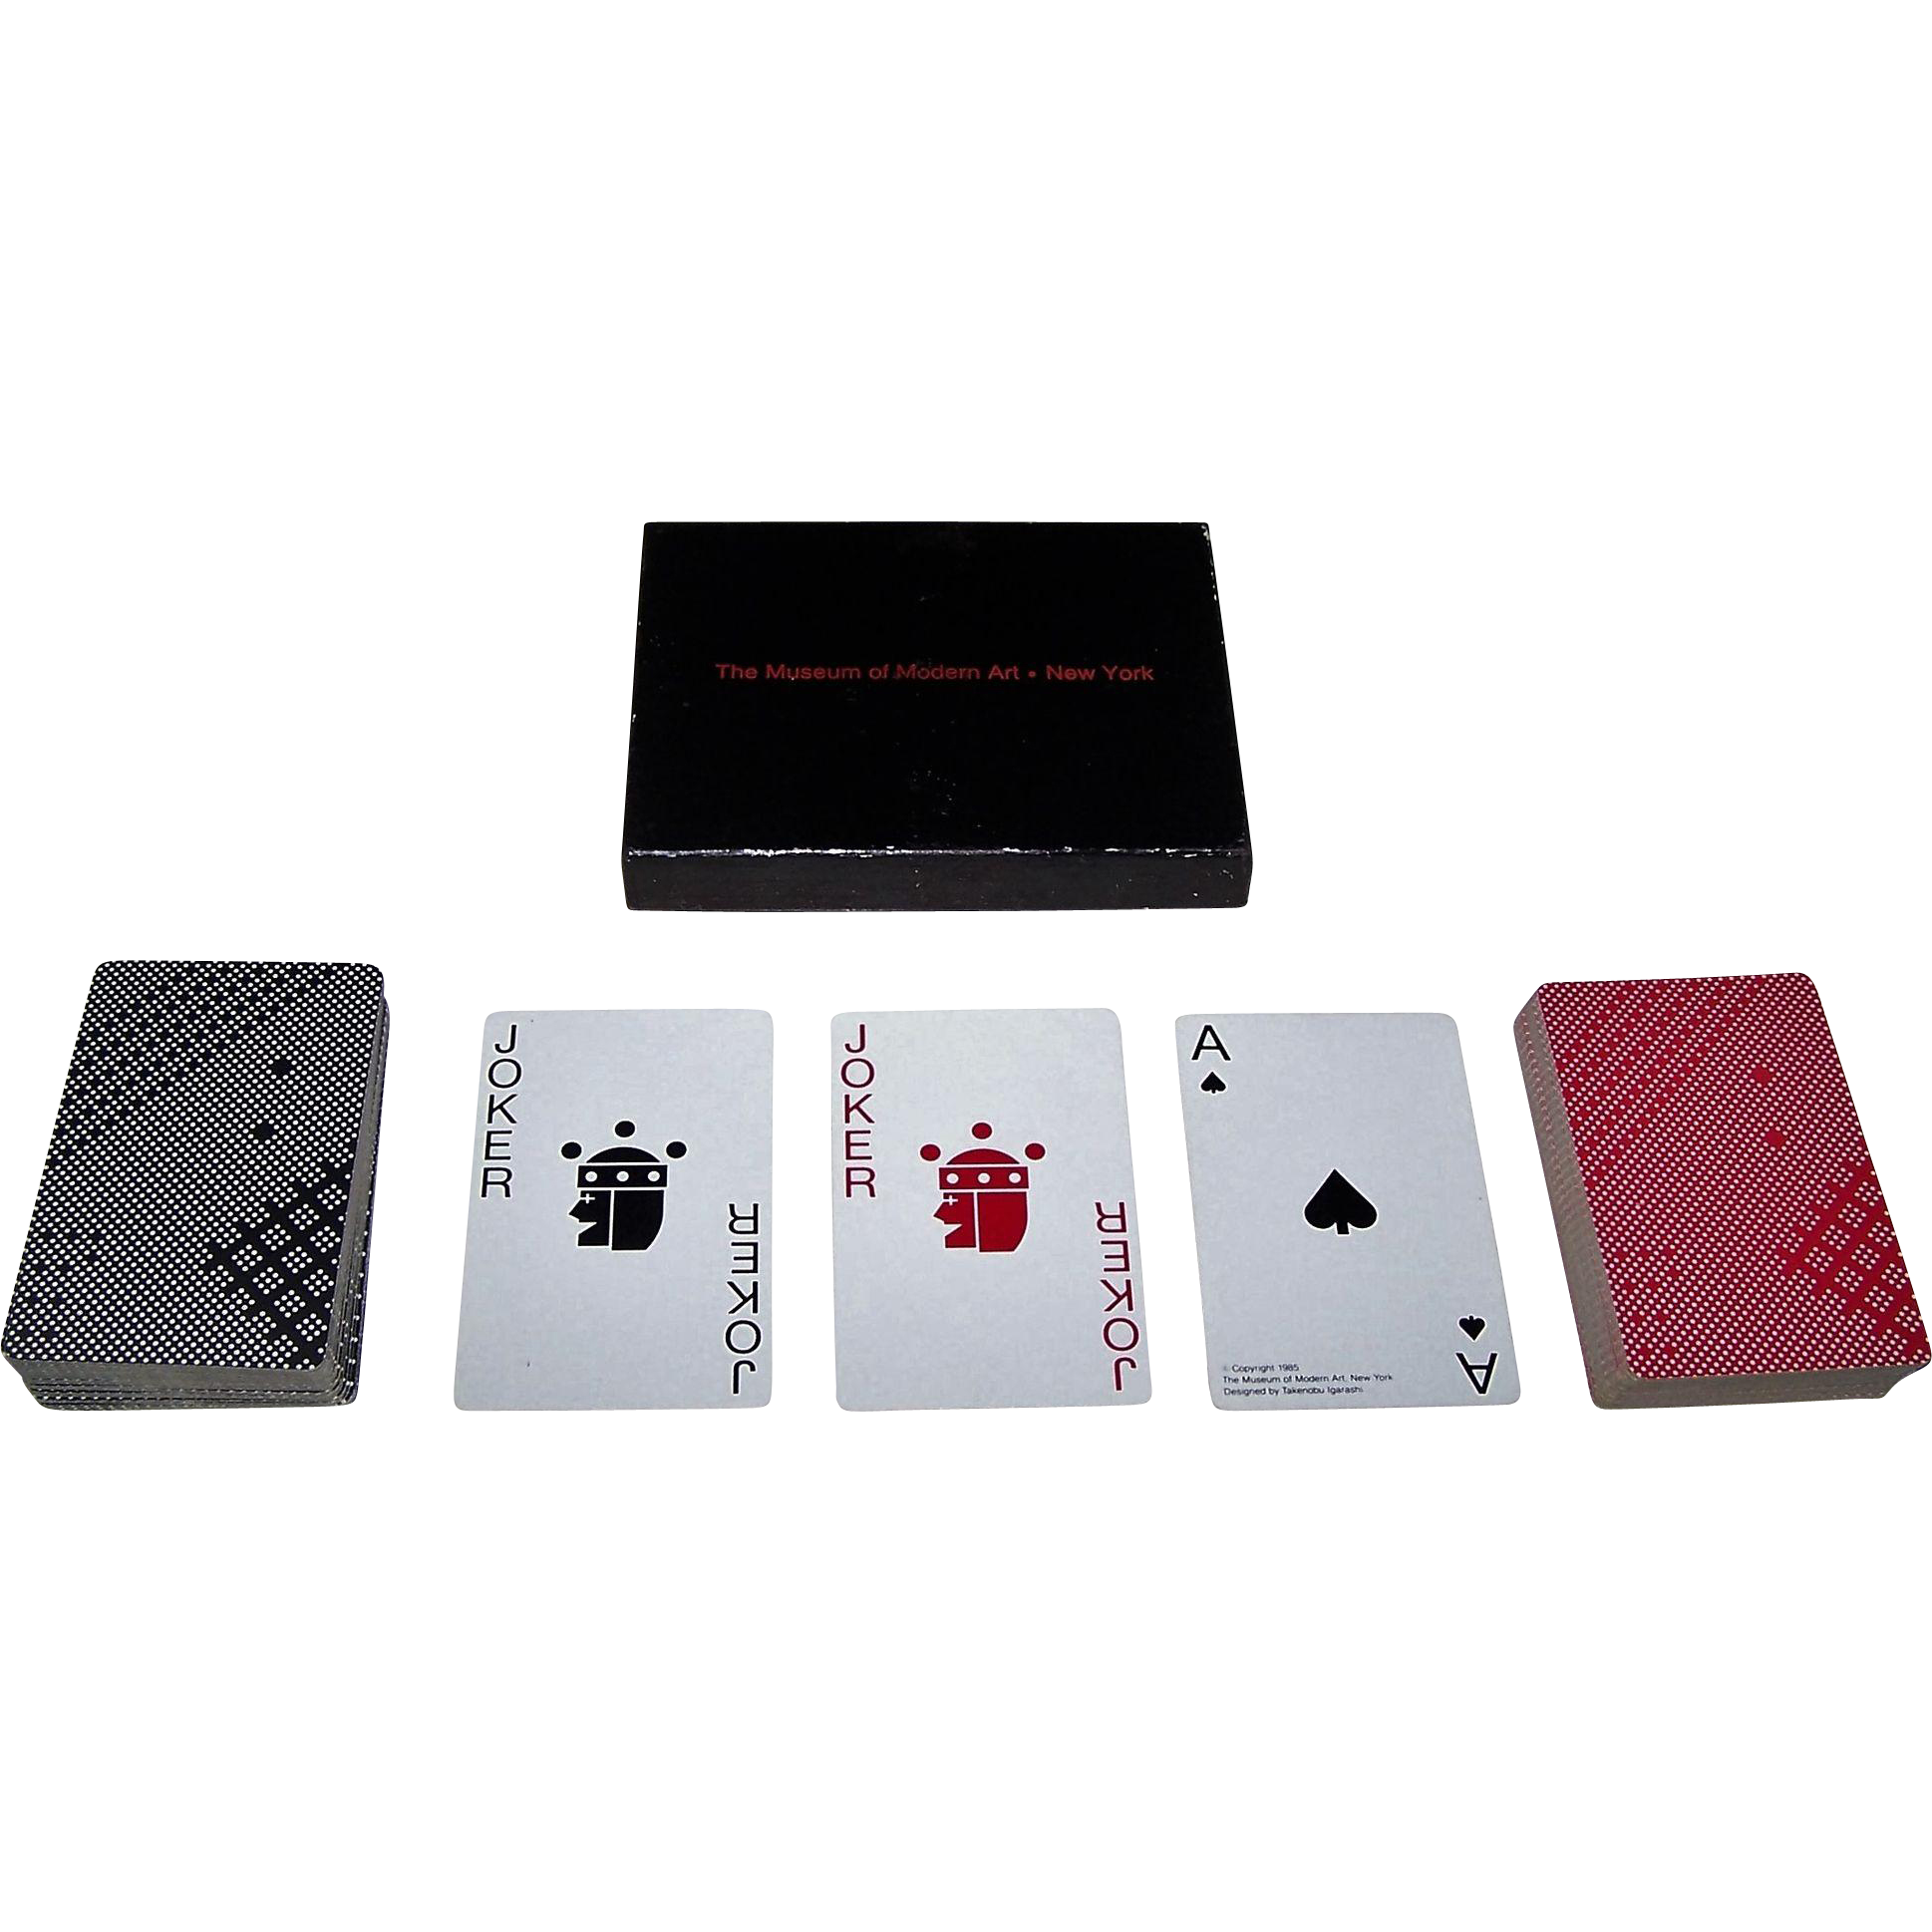 "Double Deck Piatnik ""Takenobu Igarashi"" Playing Cards, Museum of Modern Art Publisher, Takenobu Igarashi Designs, 1985"